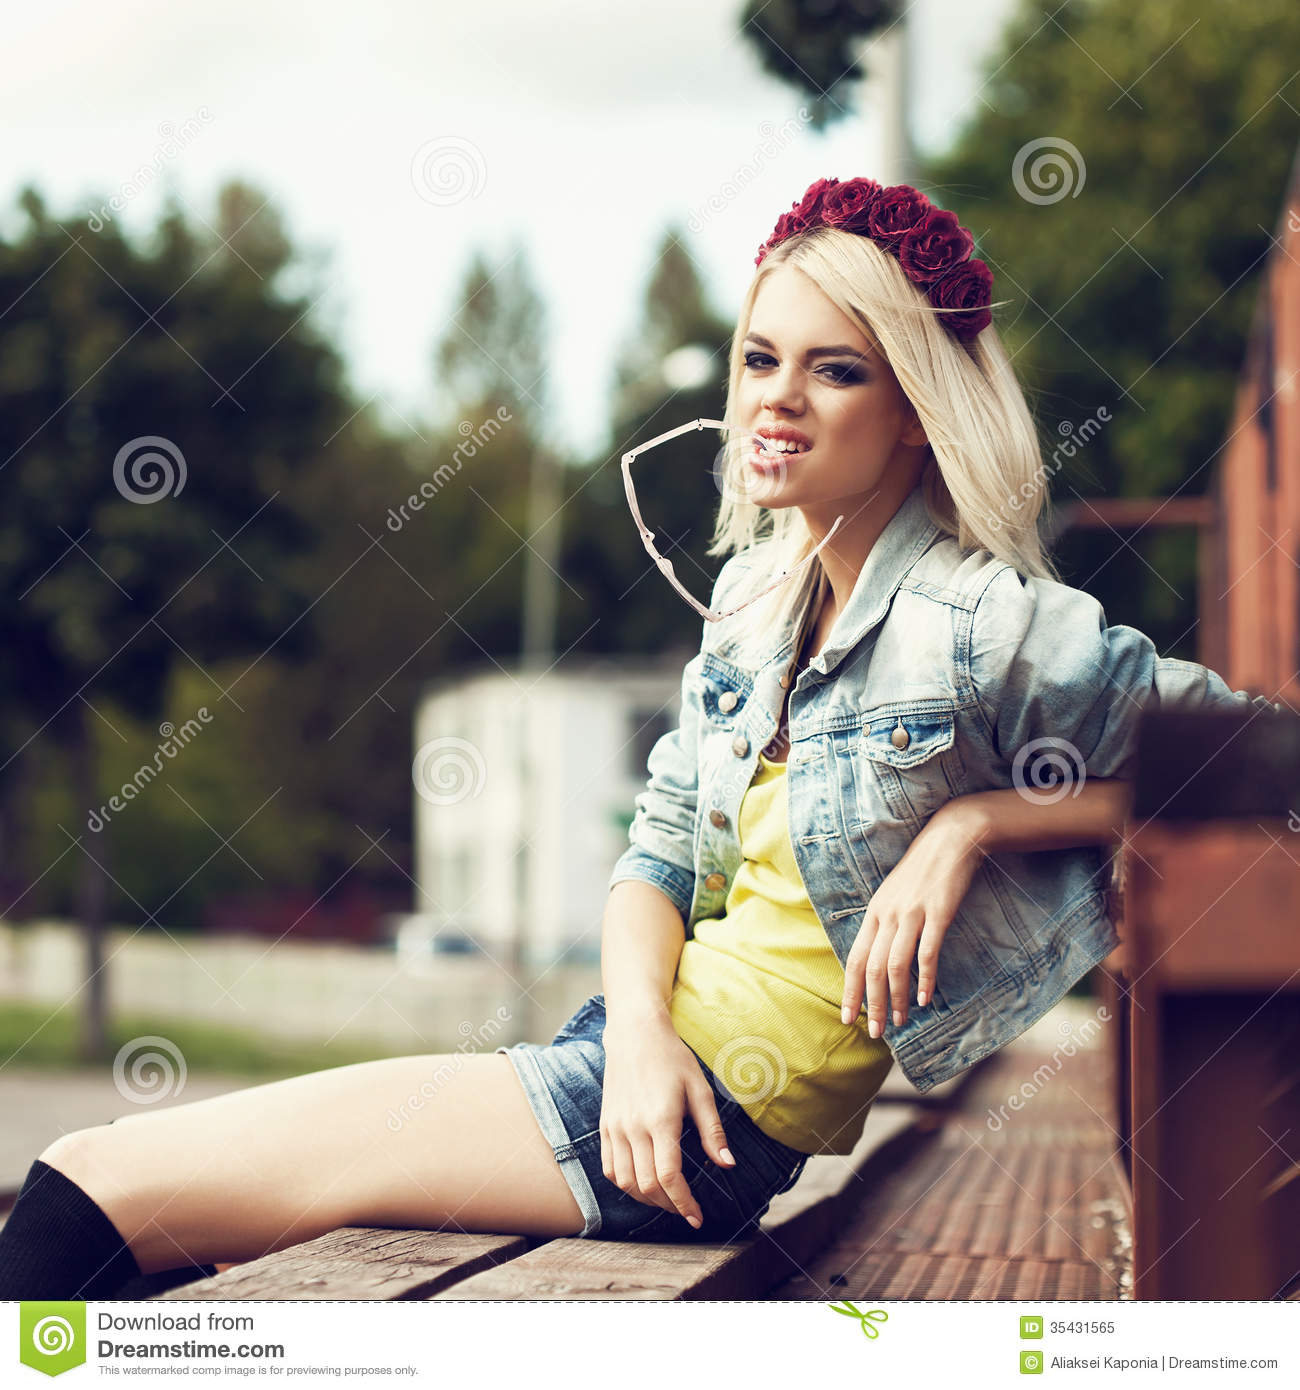 Beautiful Happy Student Relaxing Outdoor Royalty Free Stock Photo - Image: 35431565